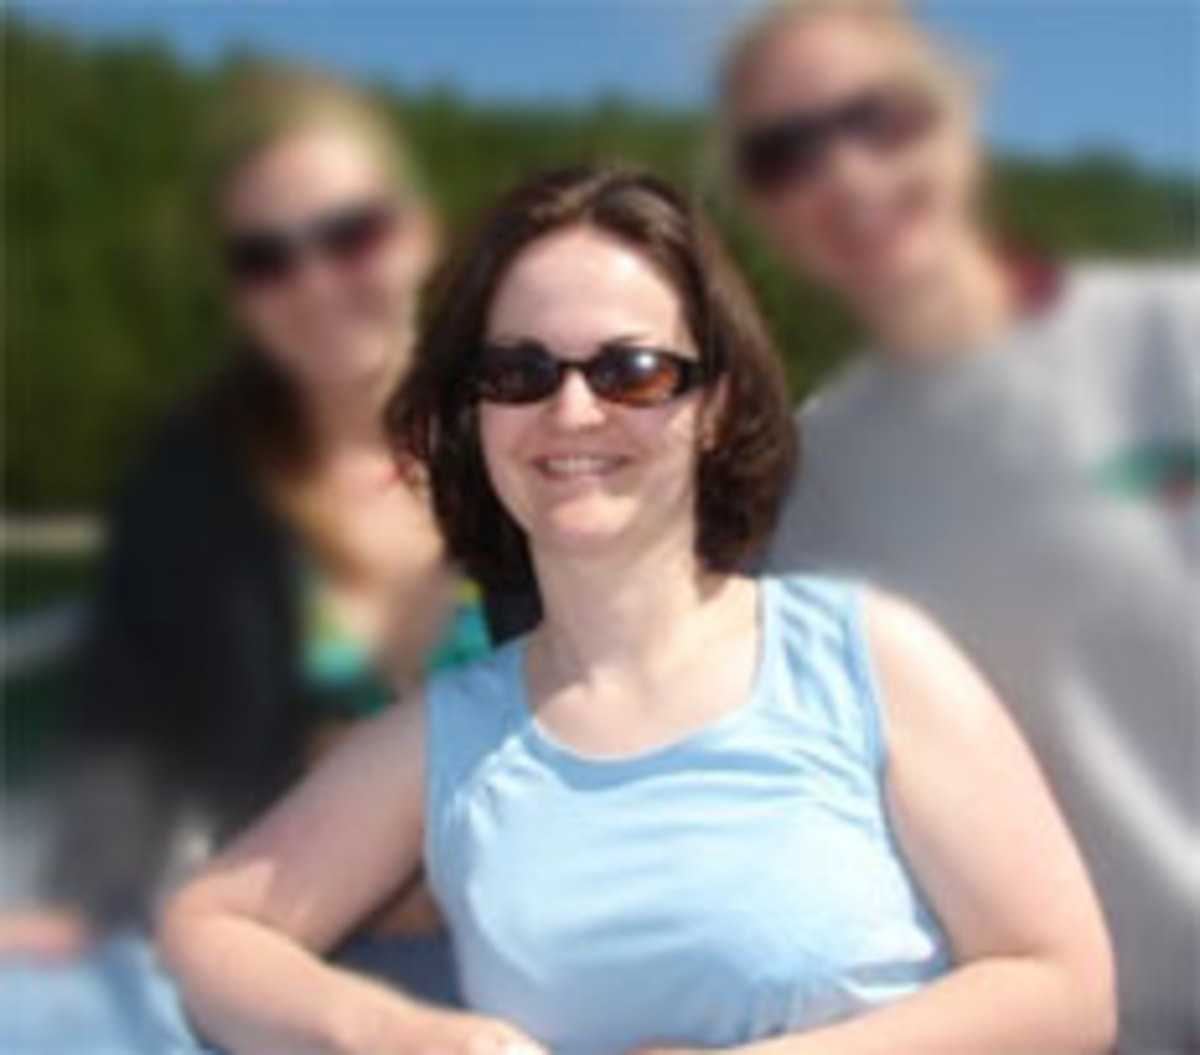 This picture of me was taken in July 2009 near the peak of my chunkiness.